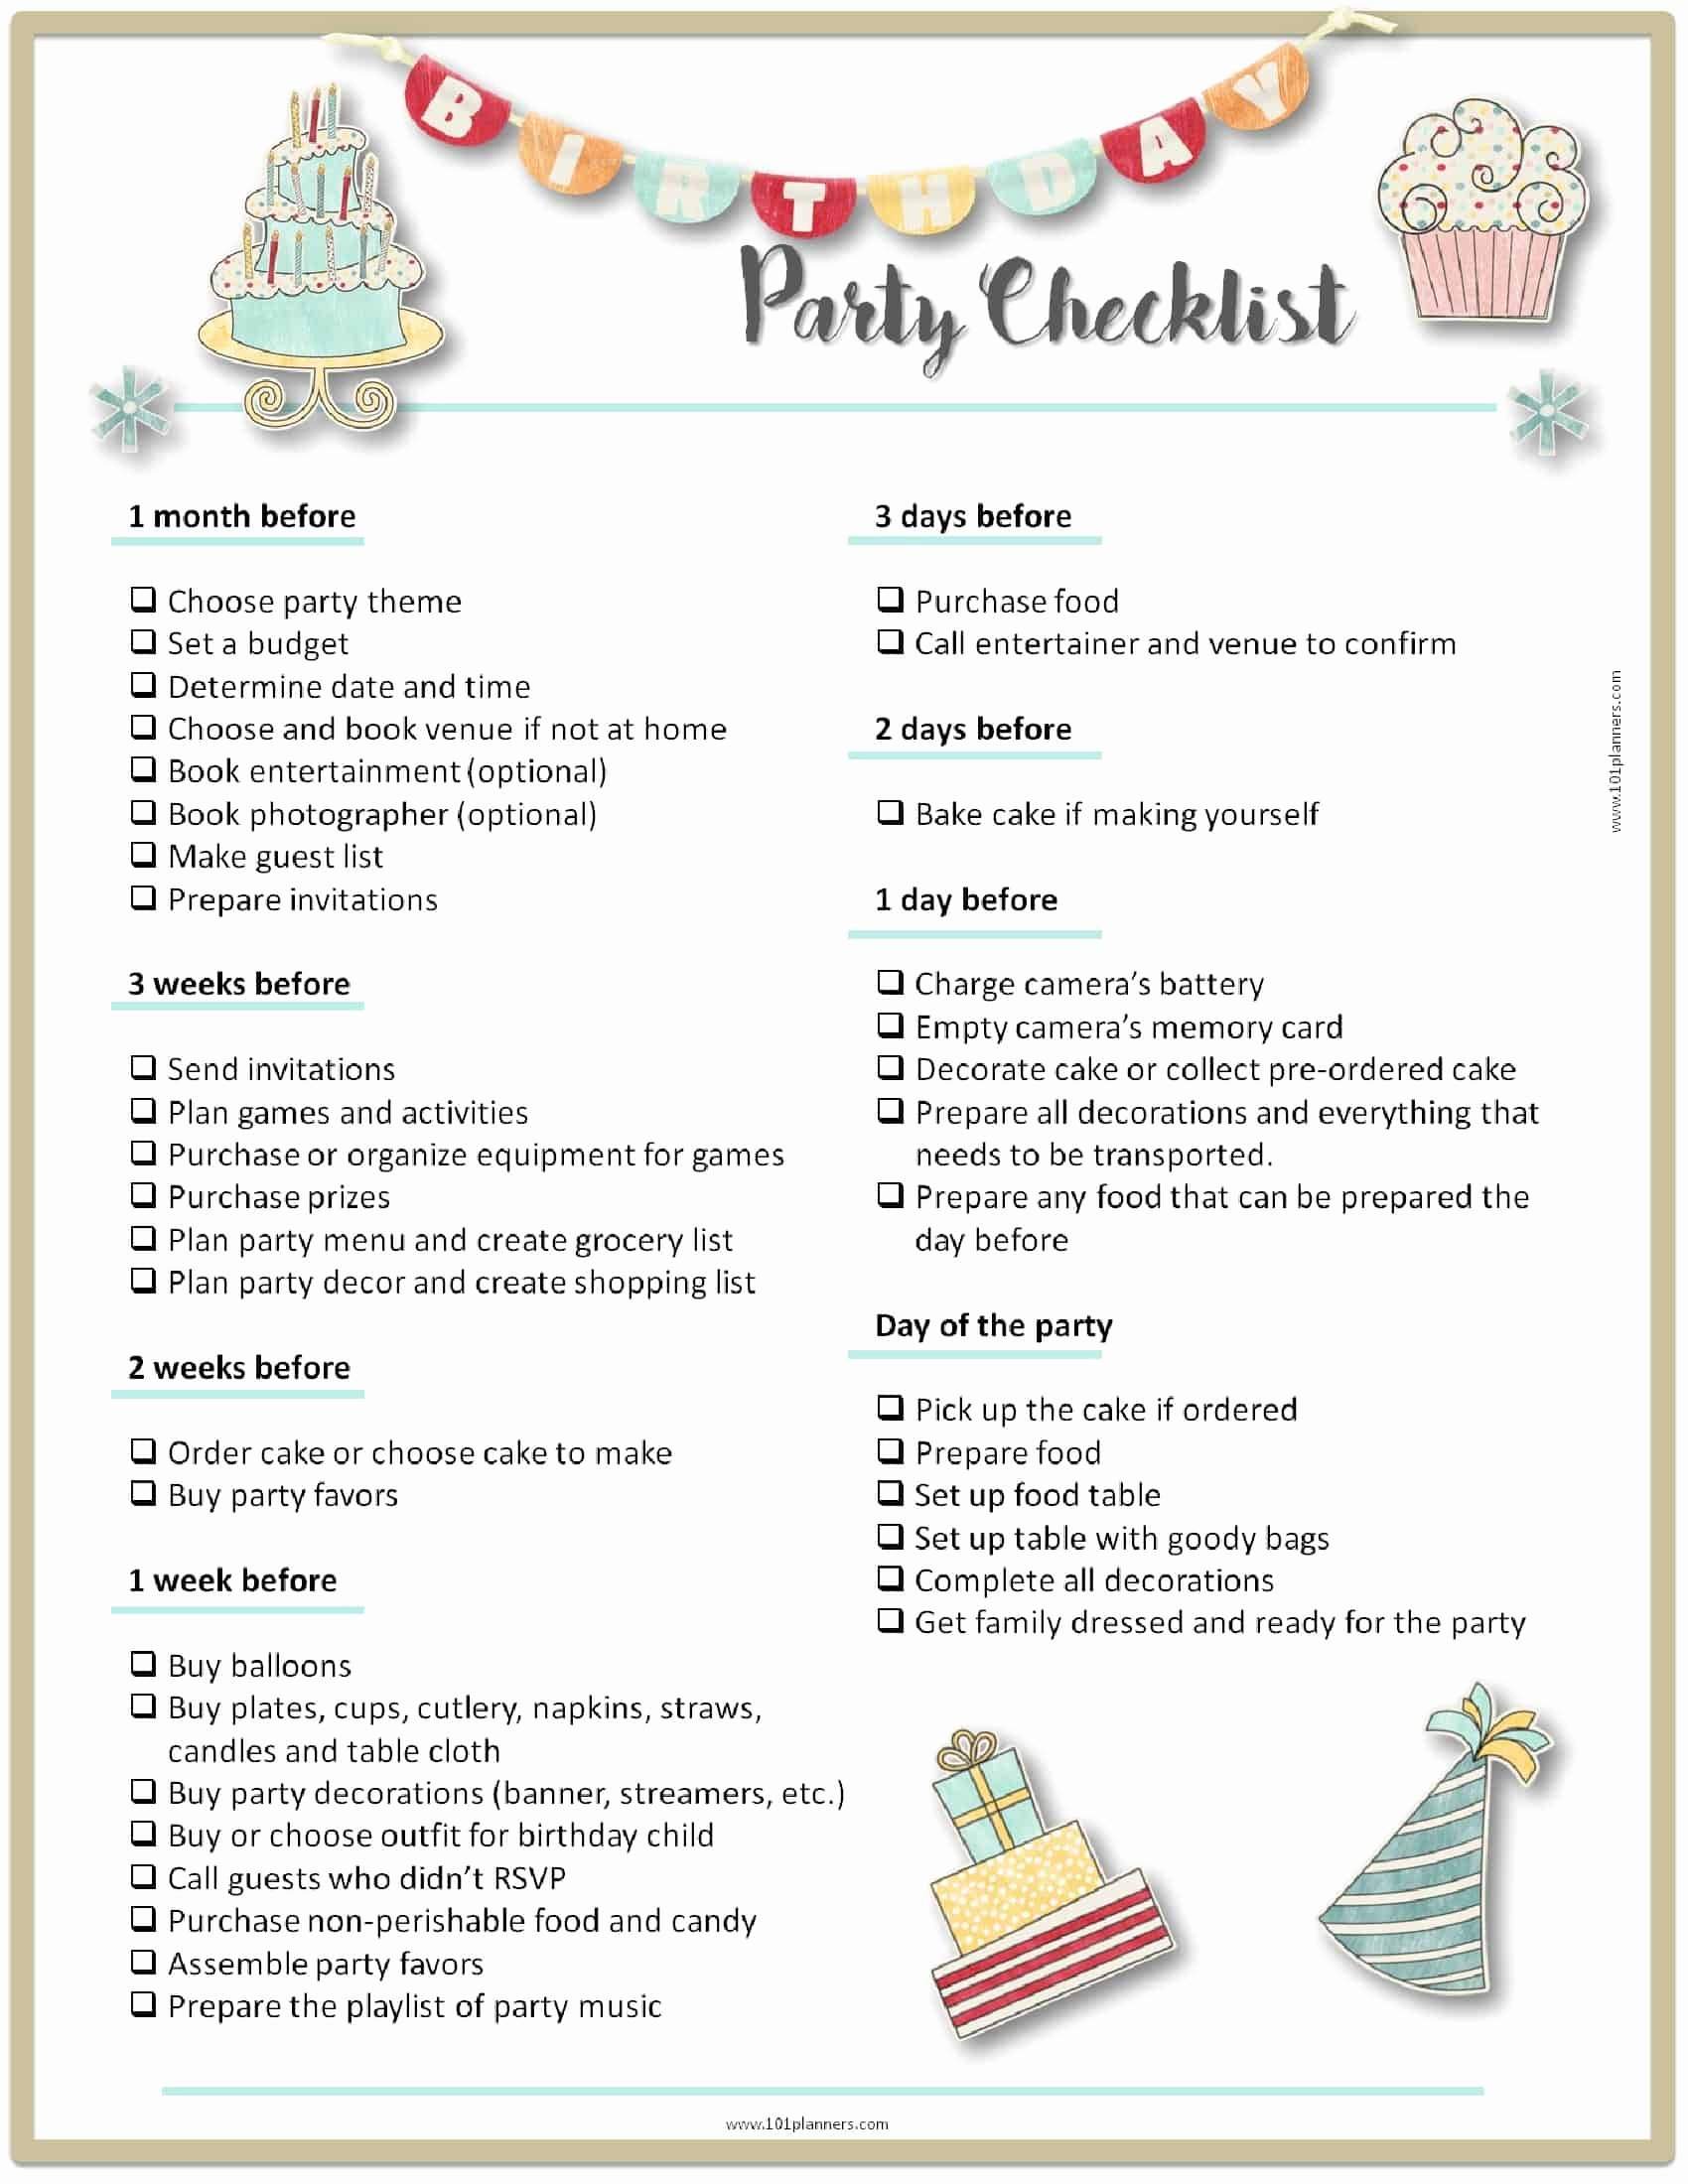 Party Planning Checklist Printable Luxury Party Planning Template